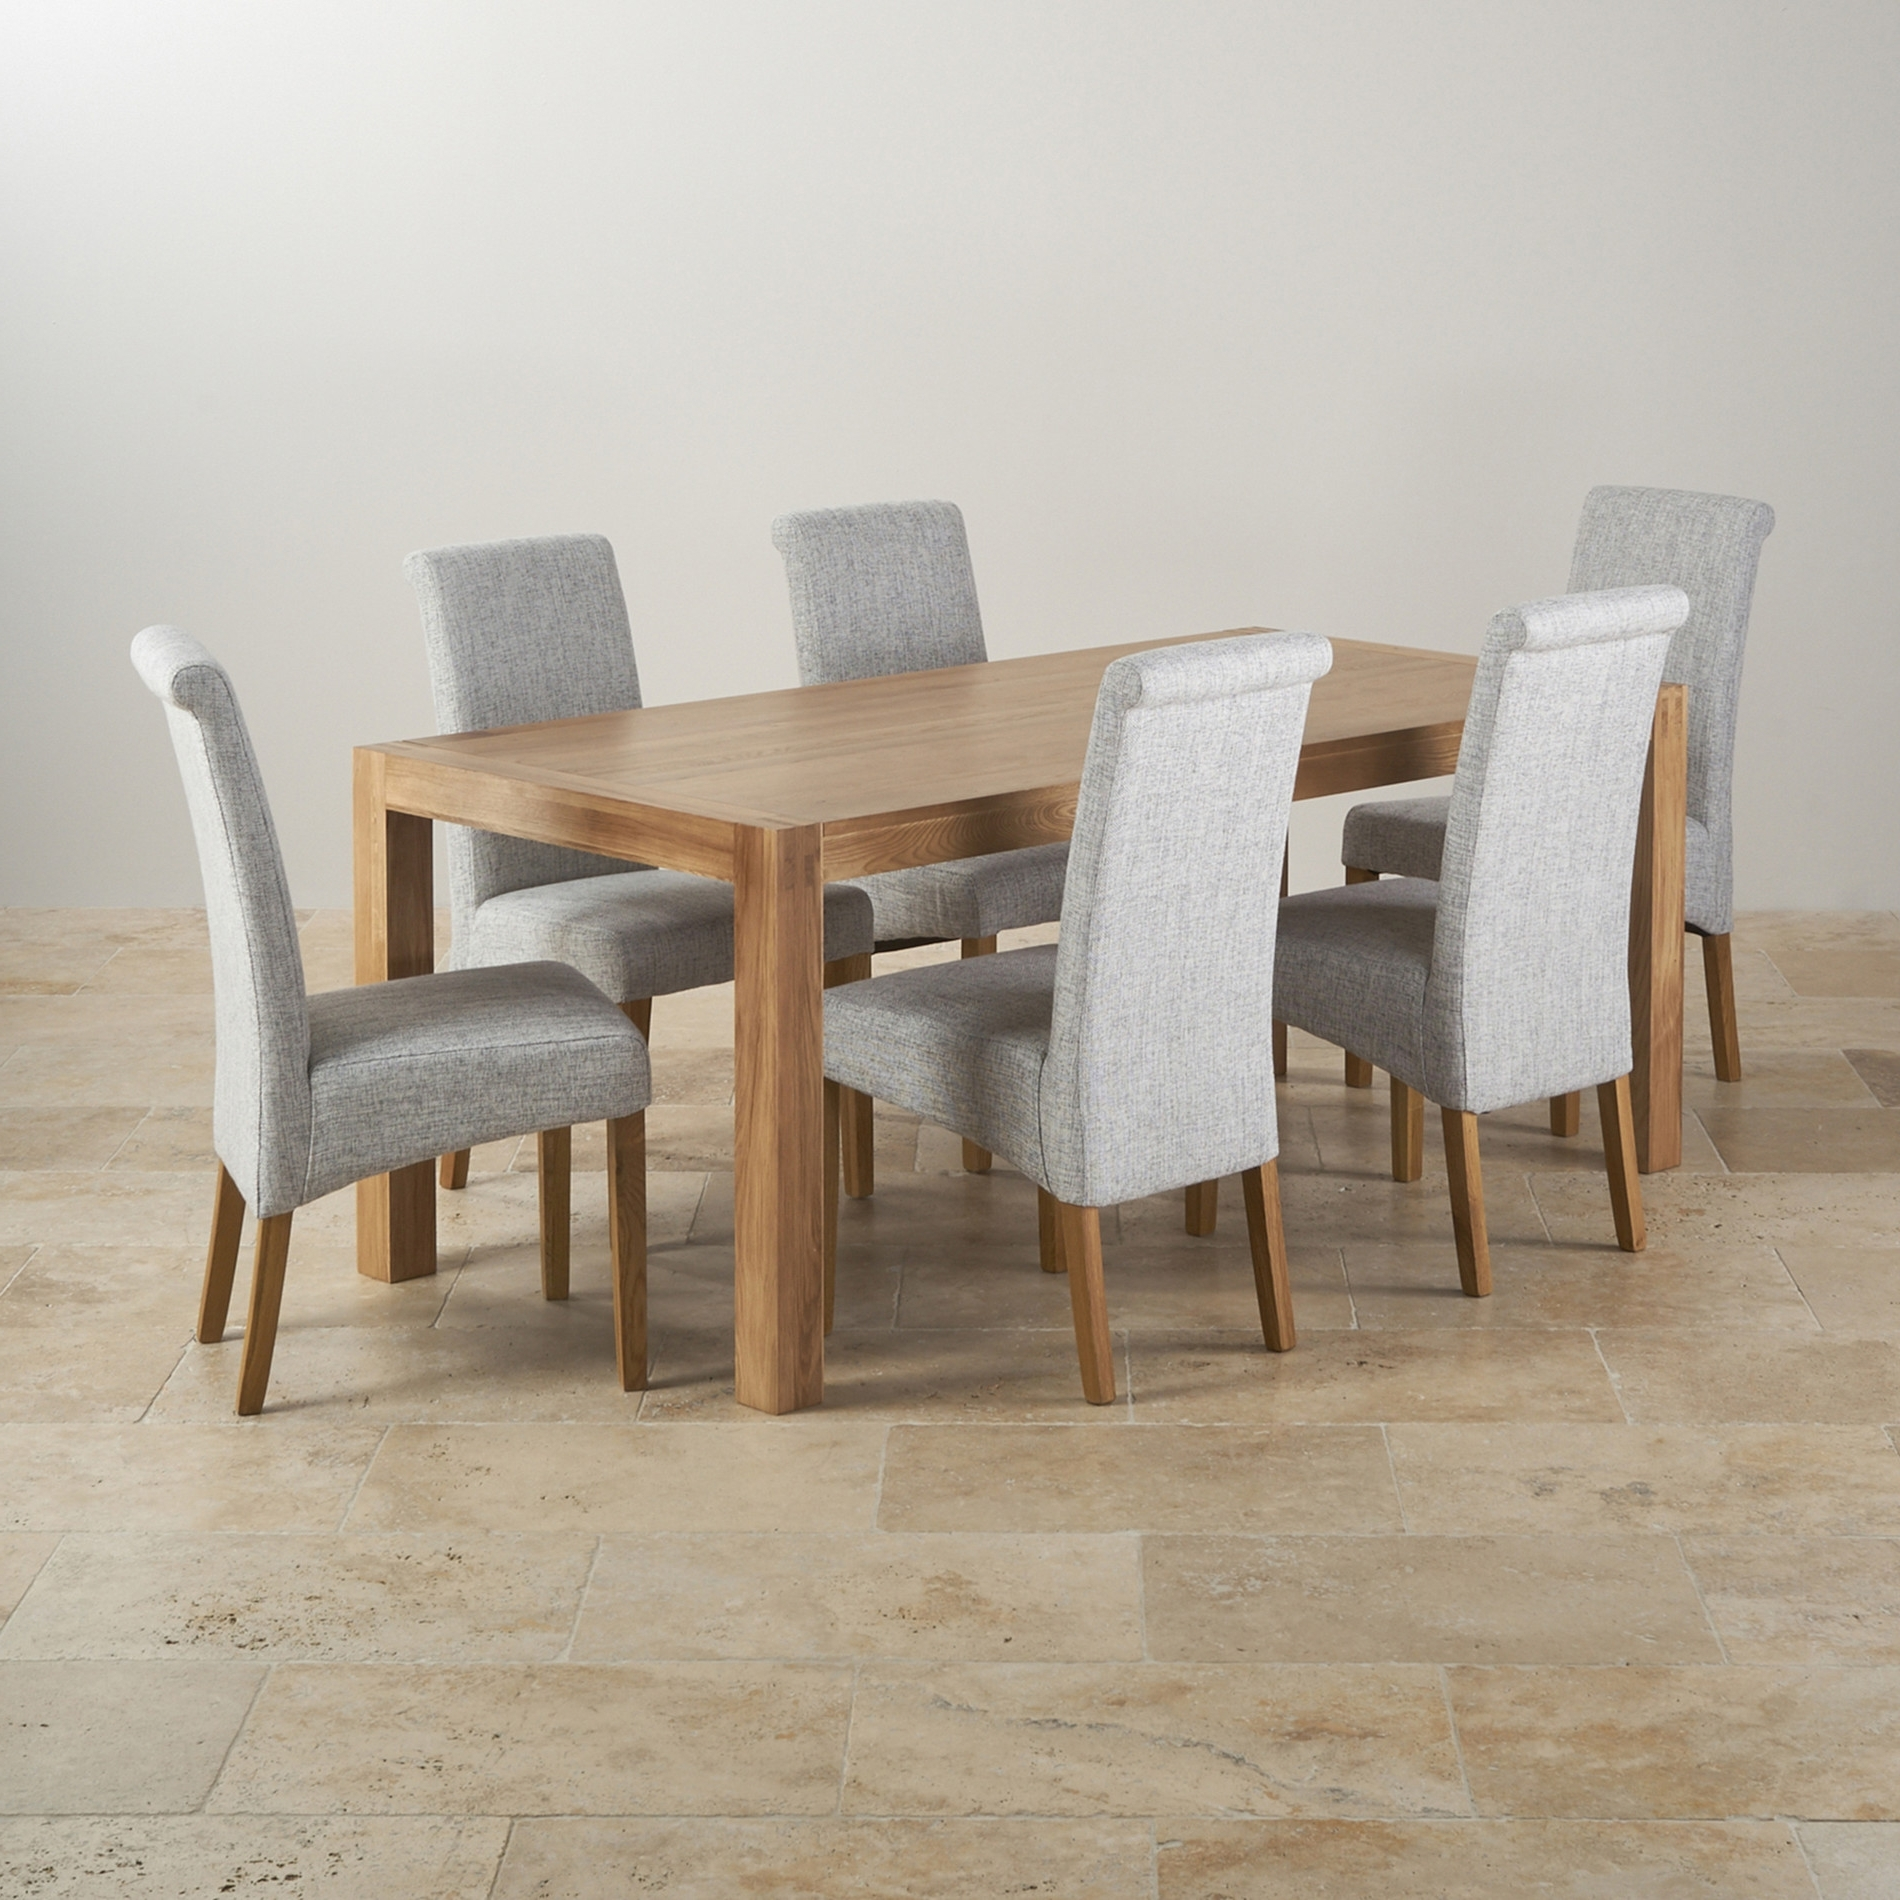 Dining Tables And Fabric Chairs Within Well Known Alto Solid Oak 6Ft Dining Table With 6 Grey Fabric Chairs Ghost (Gallery 23 of 25)